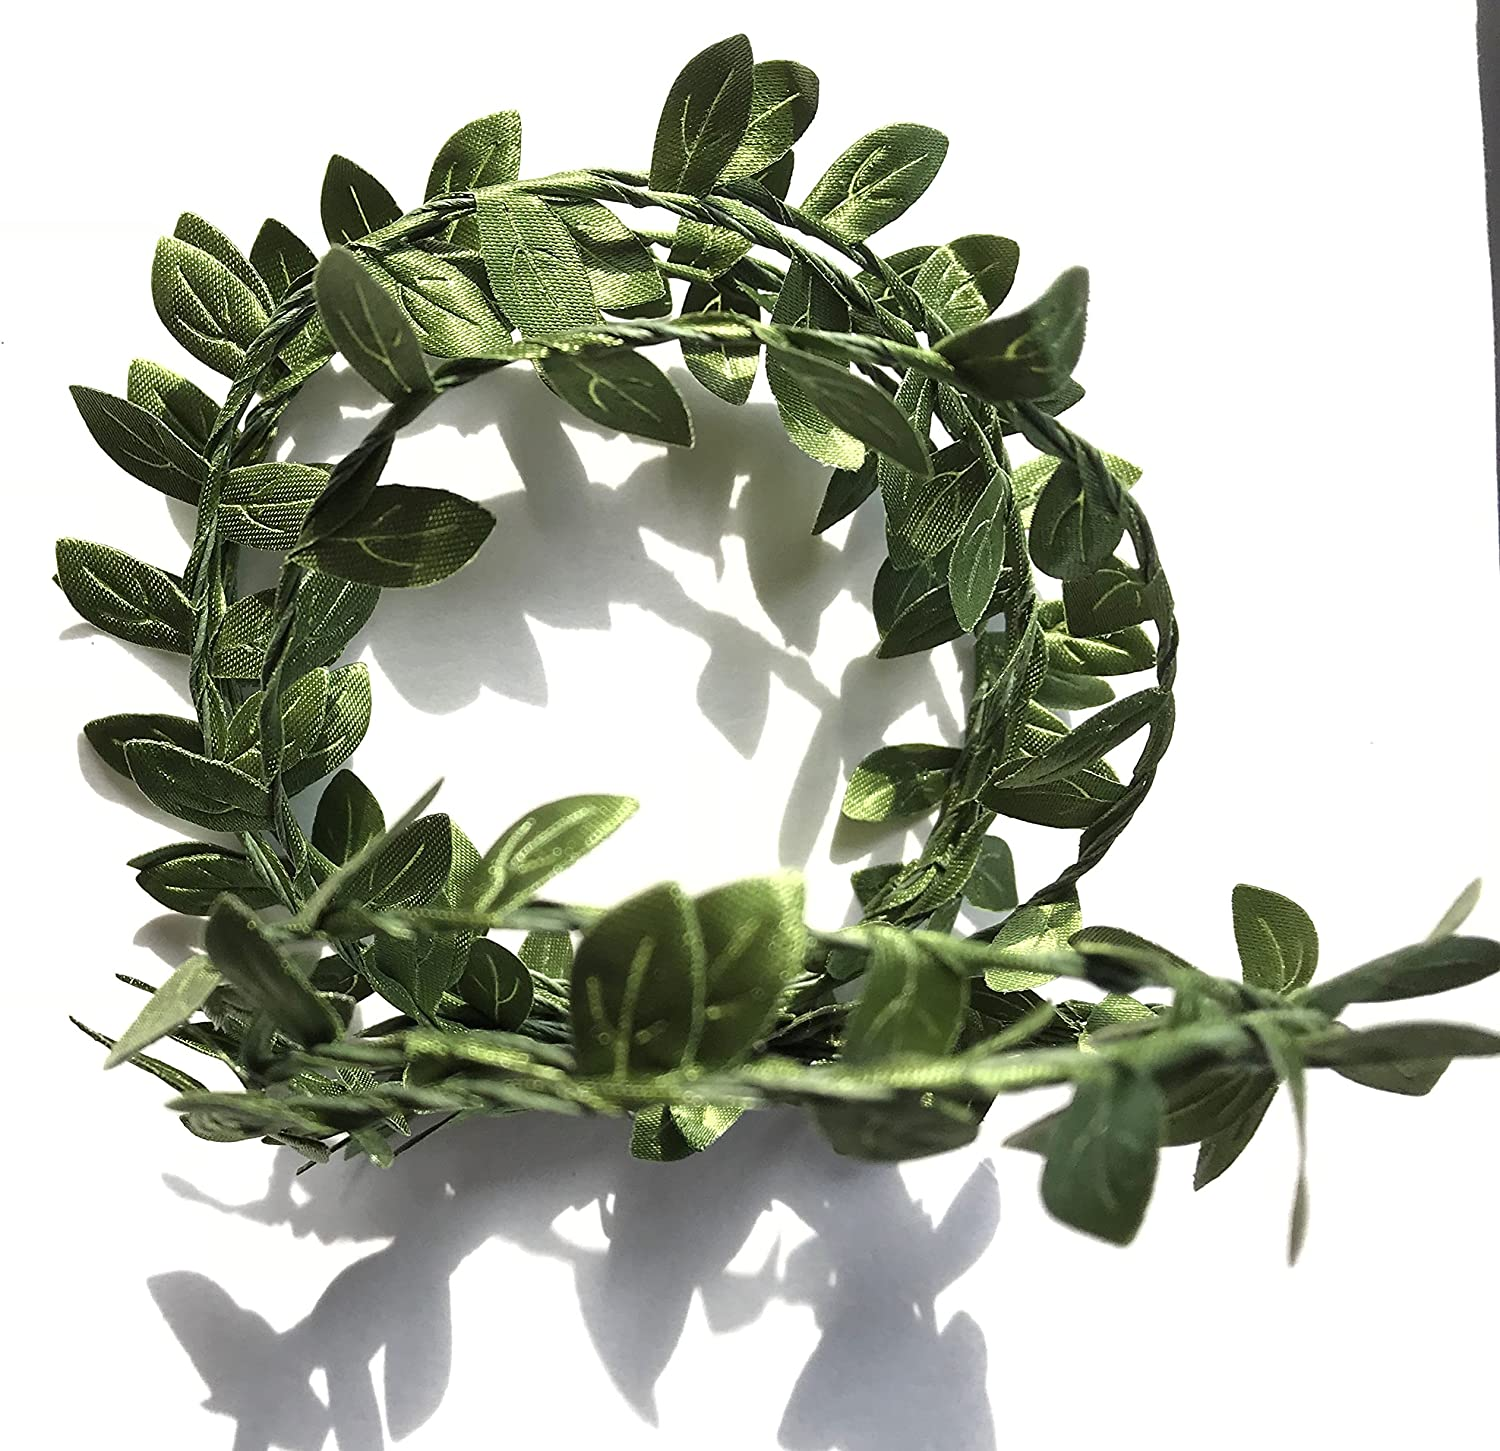 Elegant Blooms & Things Small Green Boxwood Leaf Faux Wire Garland, Home, Office, Wedding Decor, Wedding Cake Decor